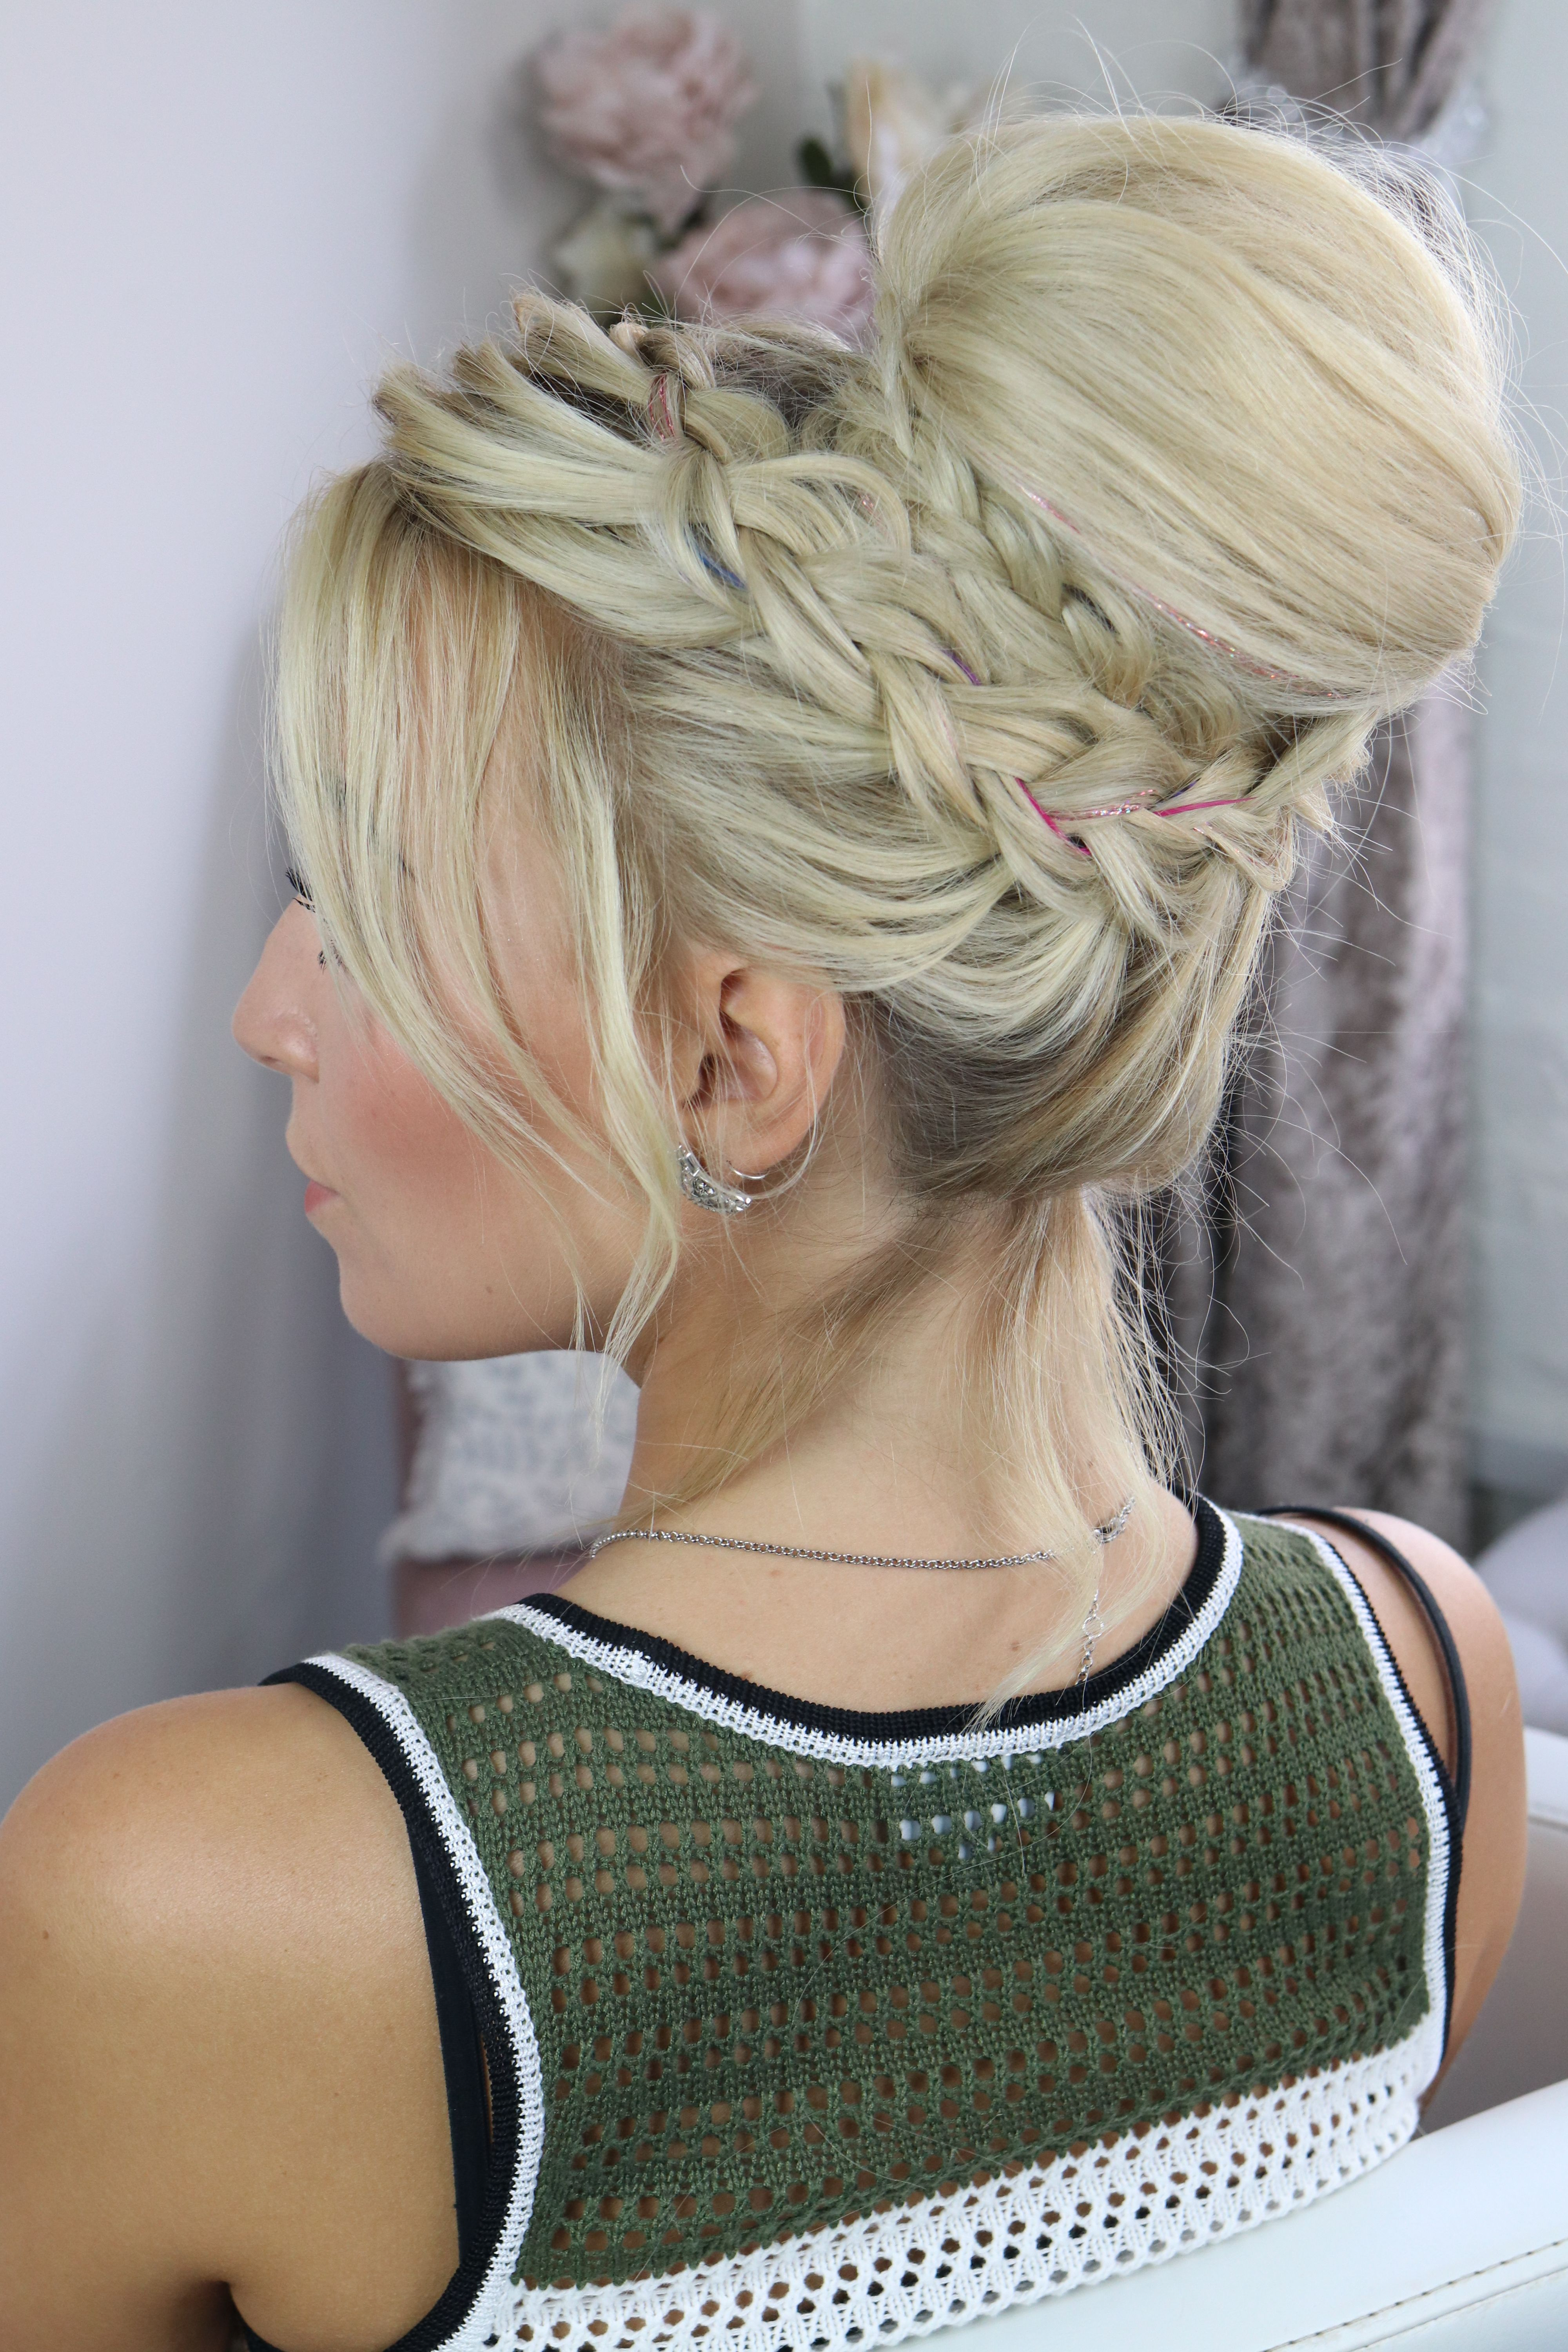 Chignon Hairstyle With Braids Youtube Sweetheartshair Hairtutorials Chignon Hair Chignon Braided Hairstyles